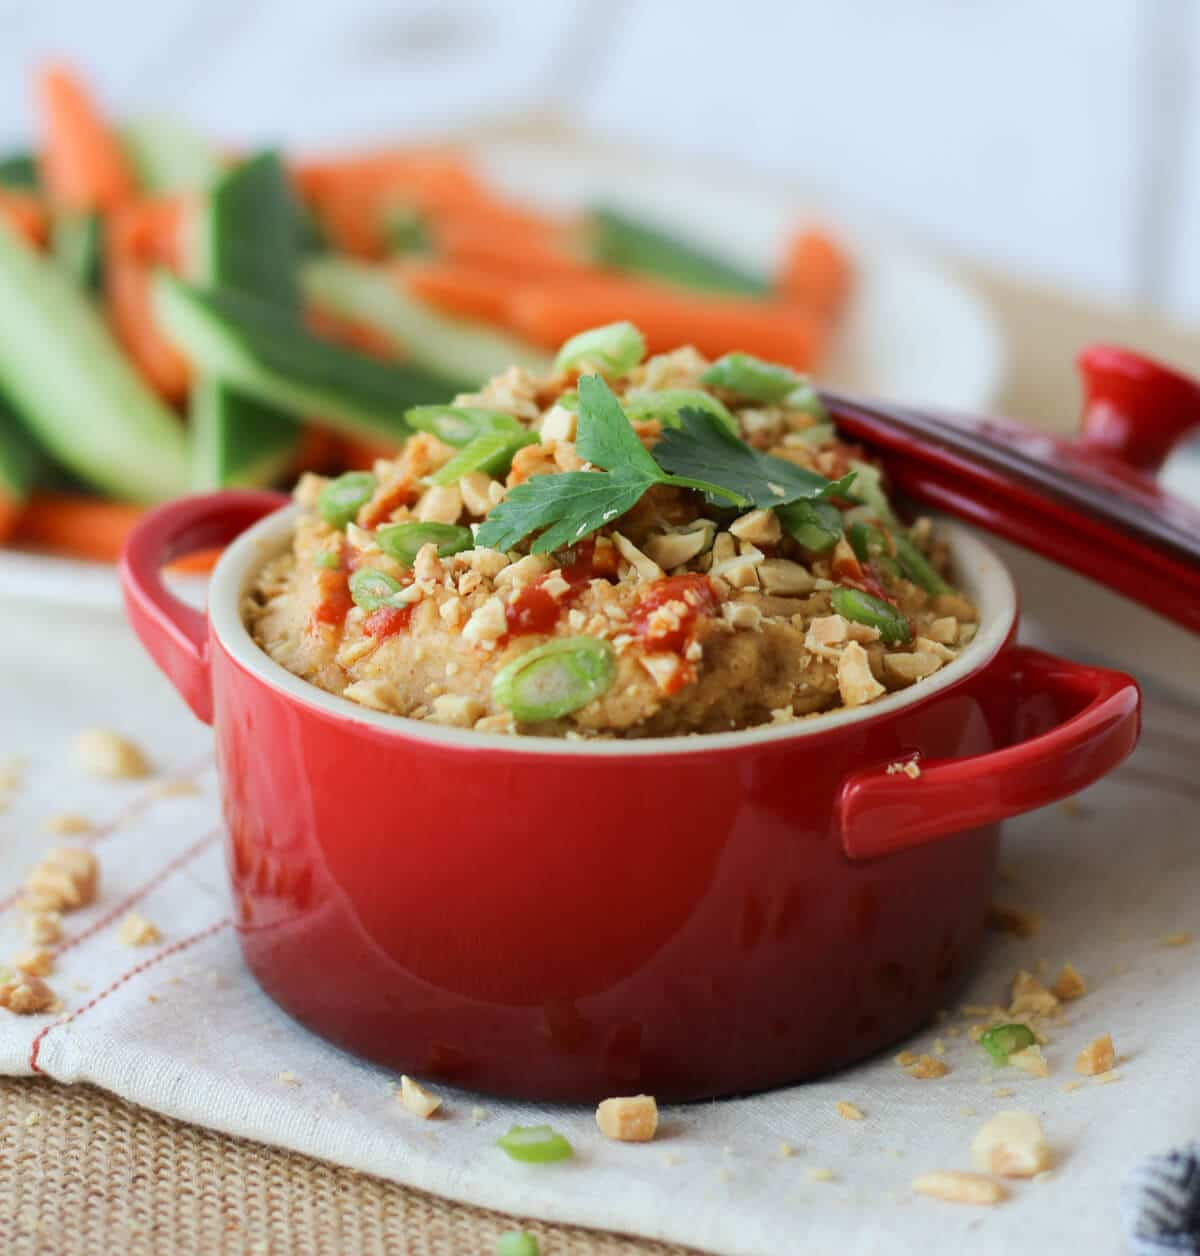 A red bowl of peanut hummus dip with sliced vegetables in the background.